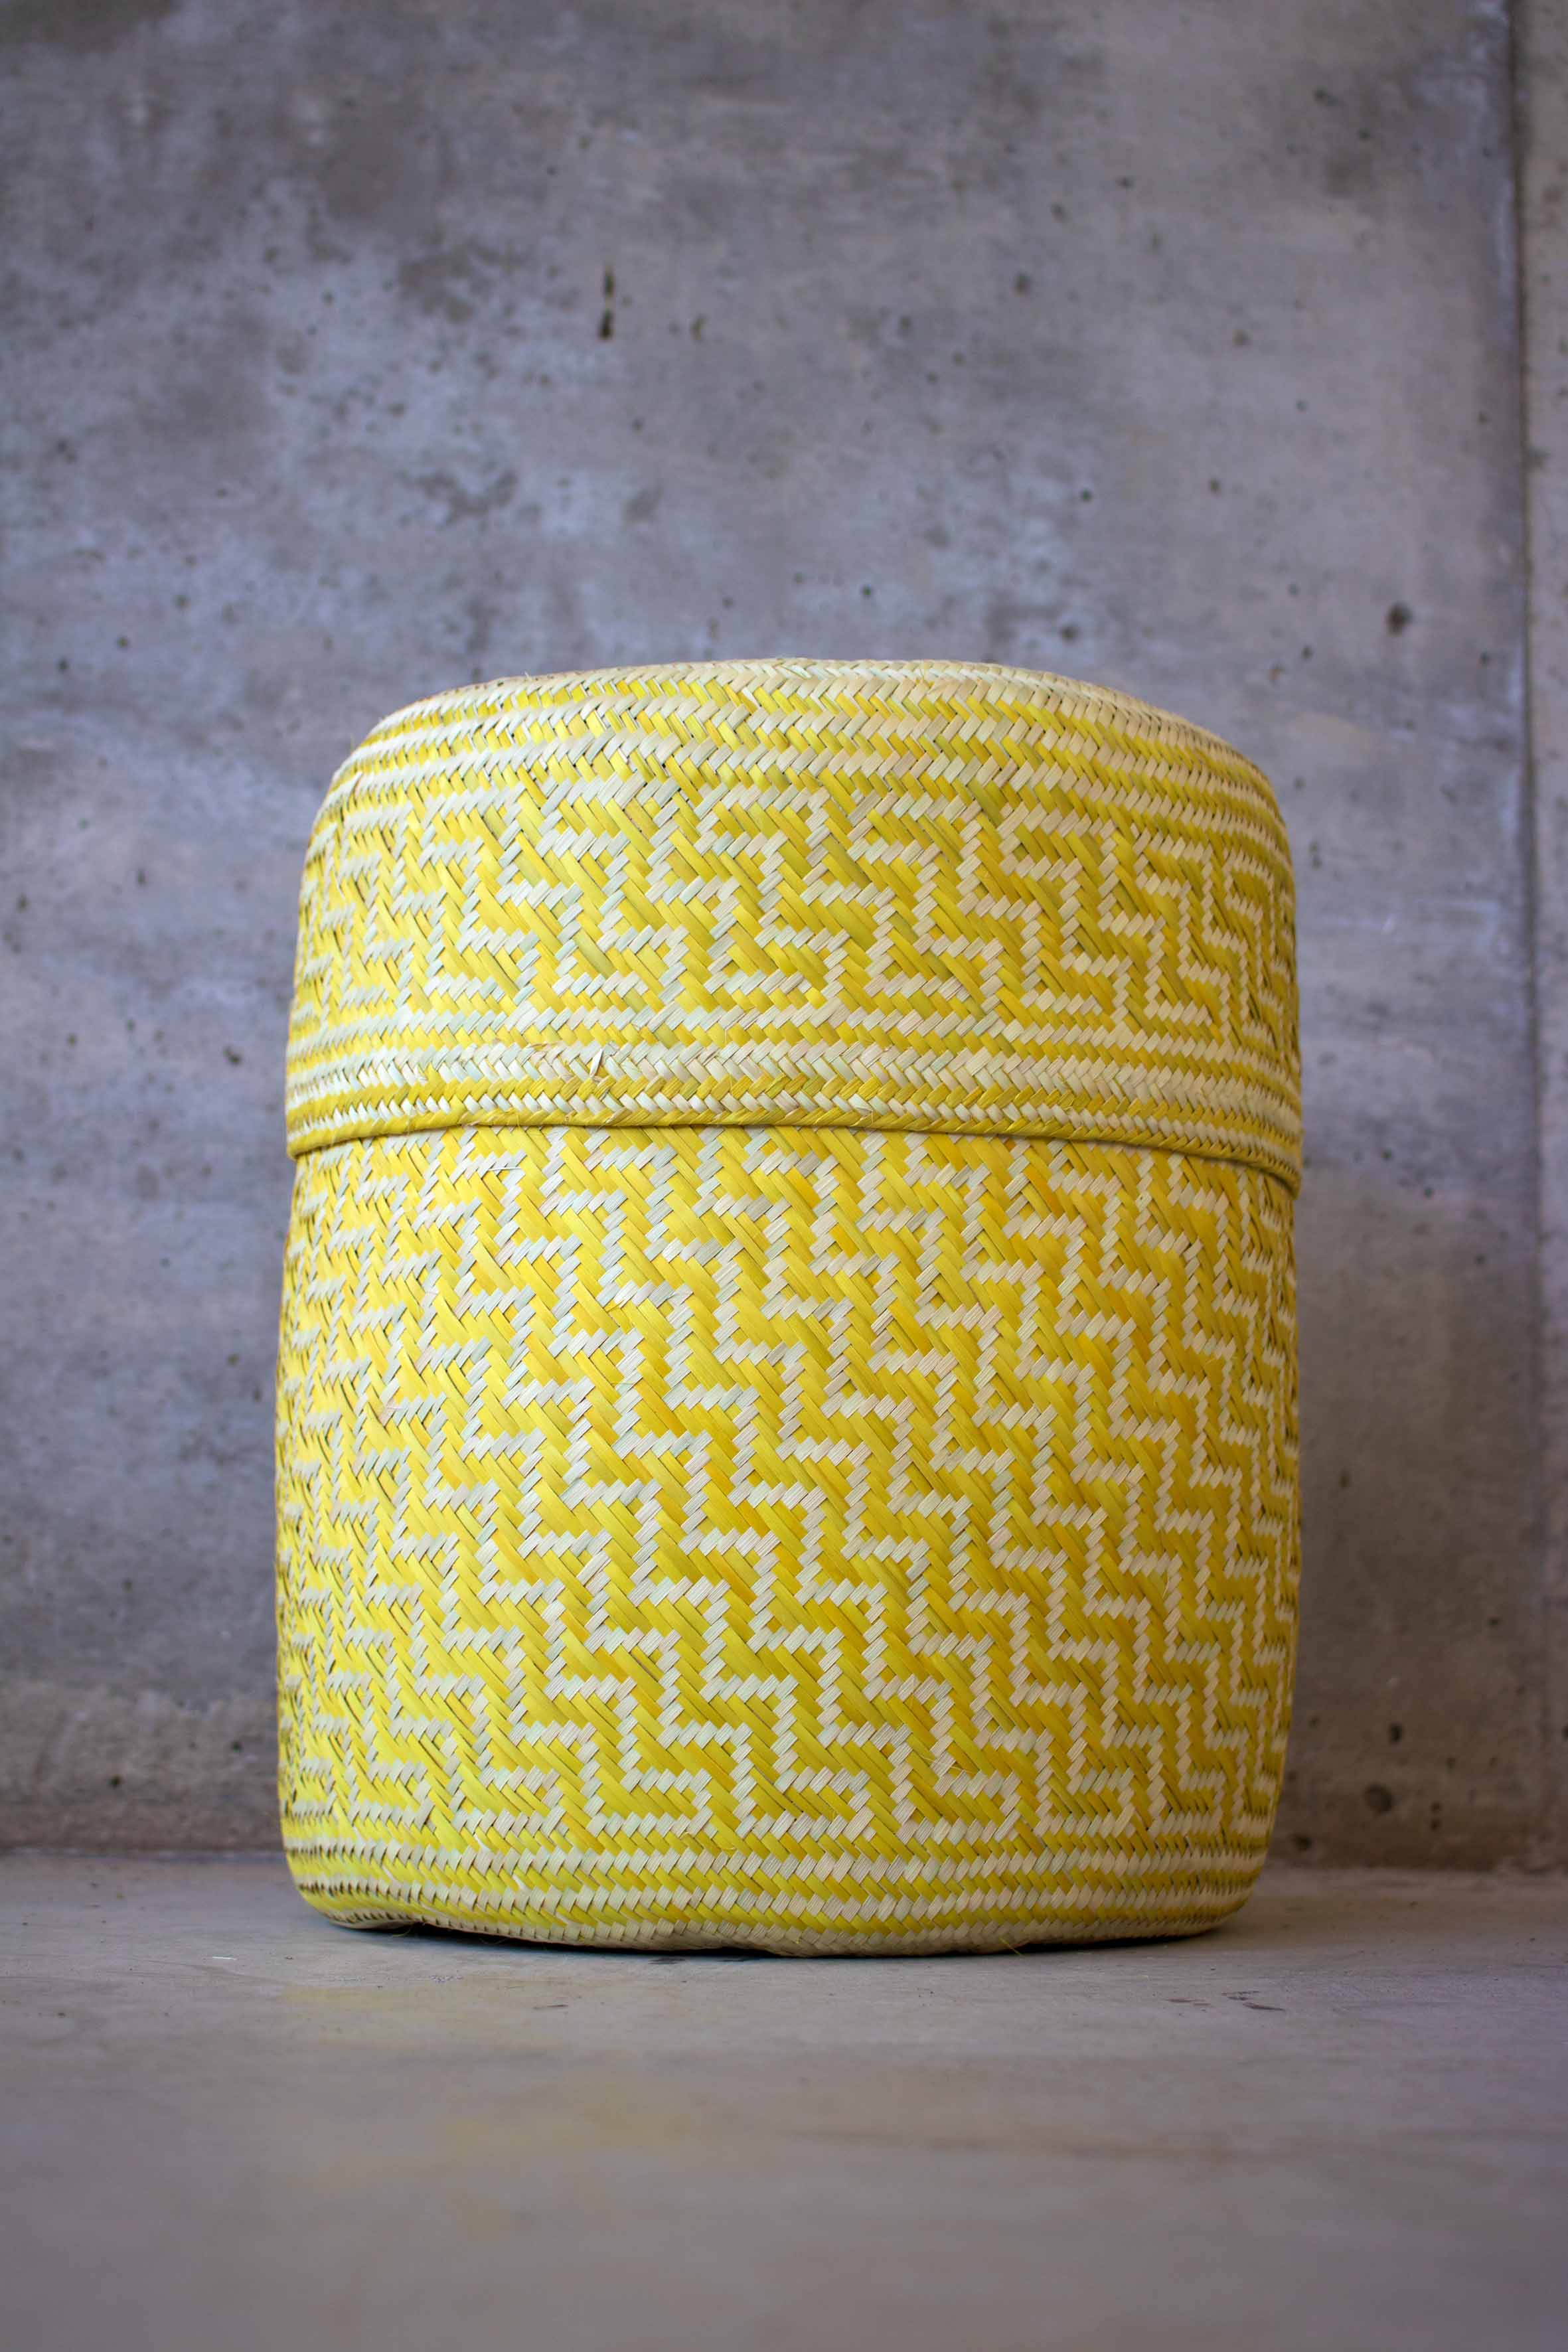 Handmade, ethical and sustainable palm basket from Mexico - Large Yellow